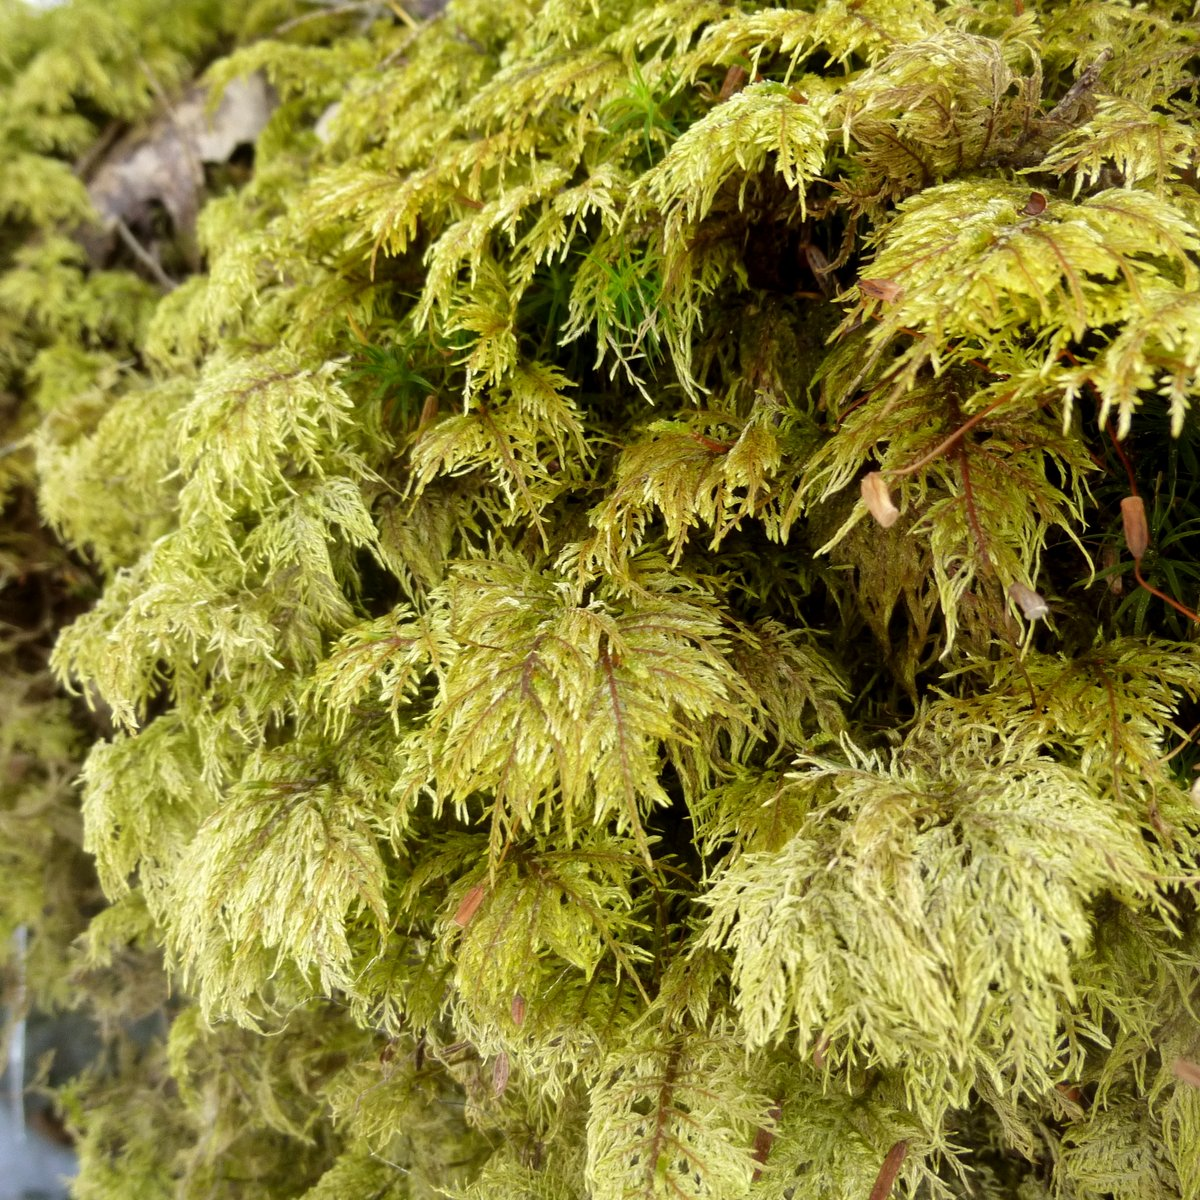 6. Stairstep Moss